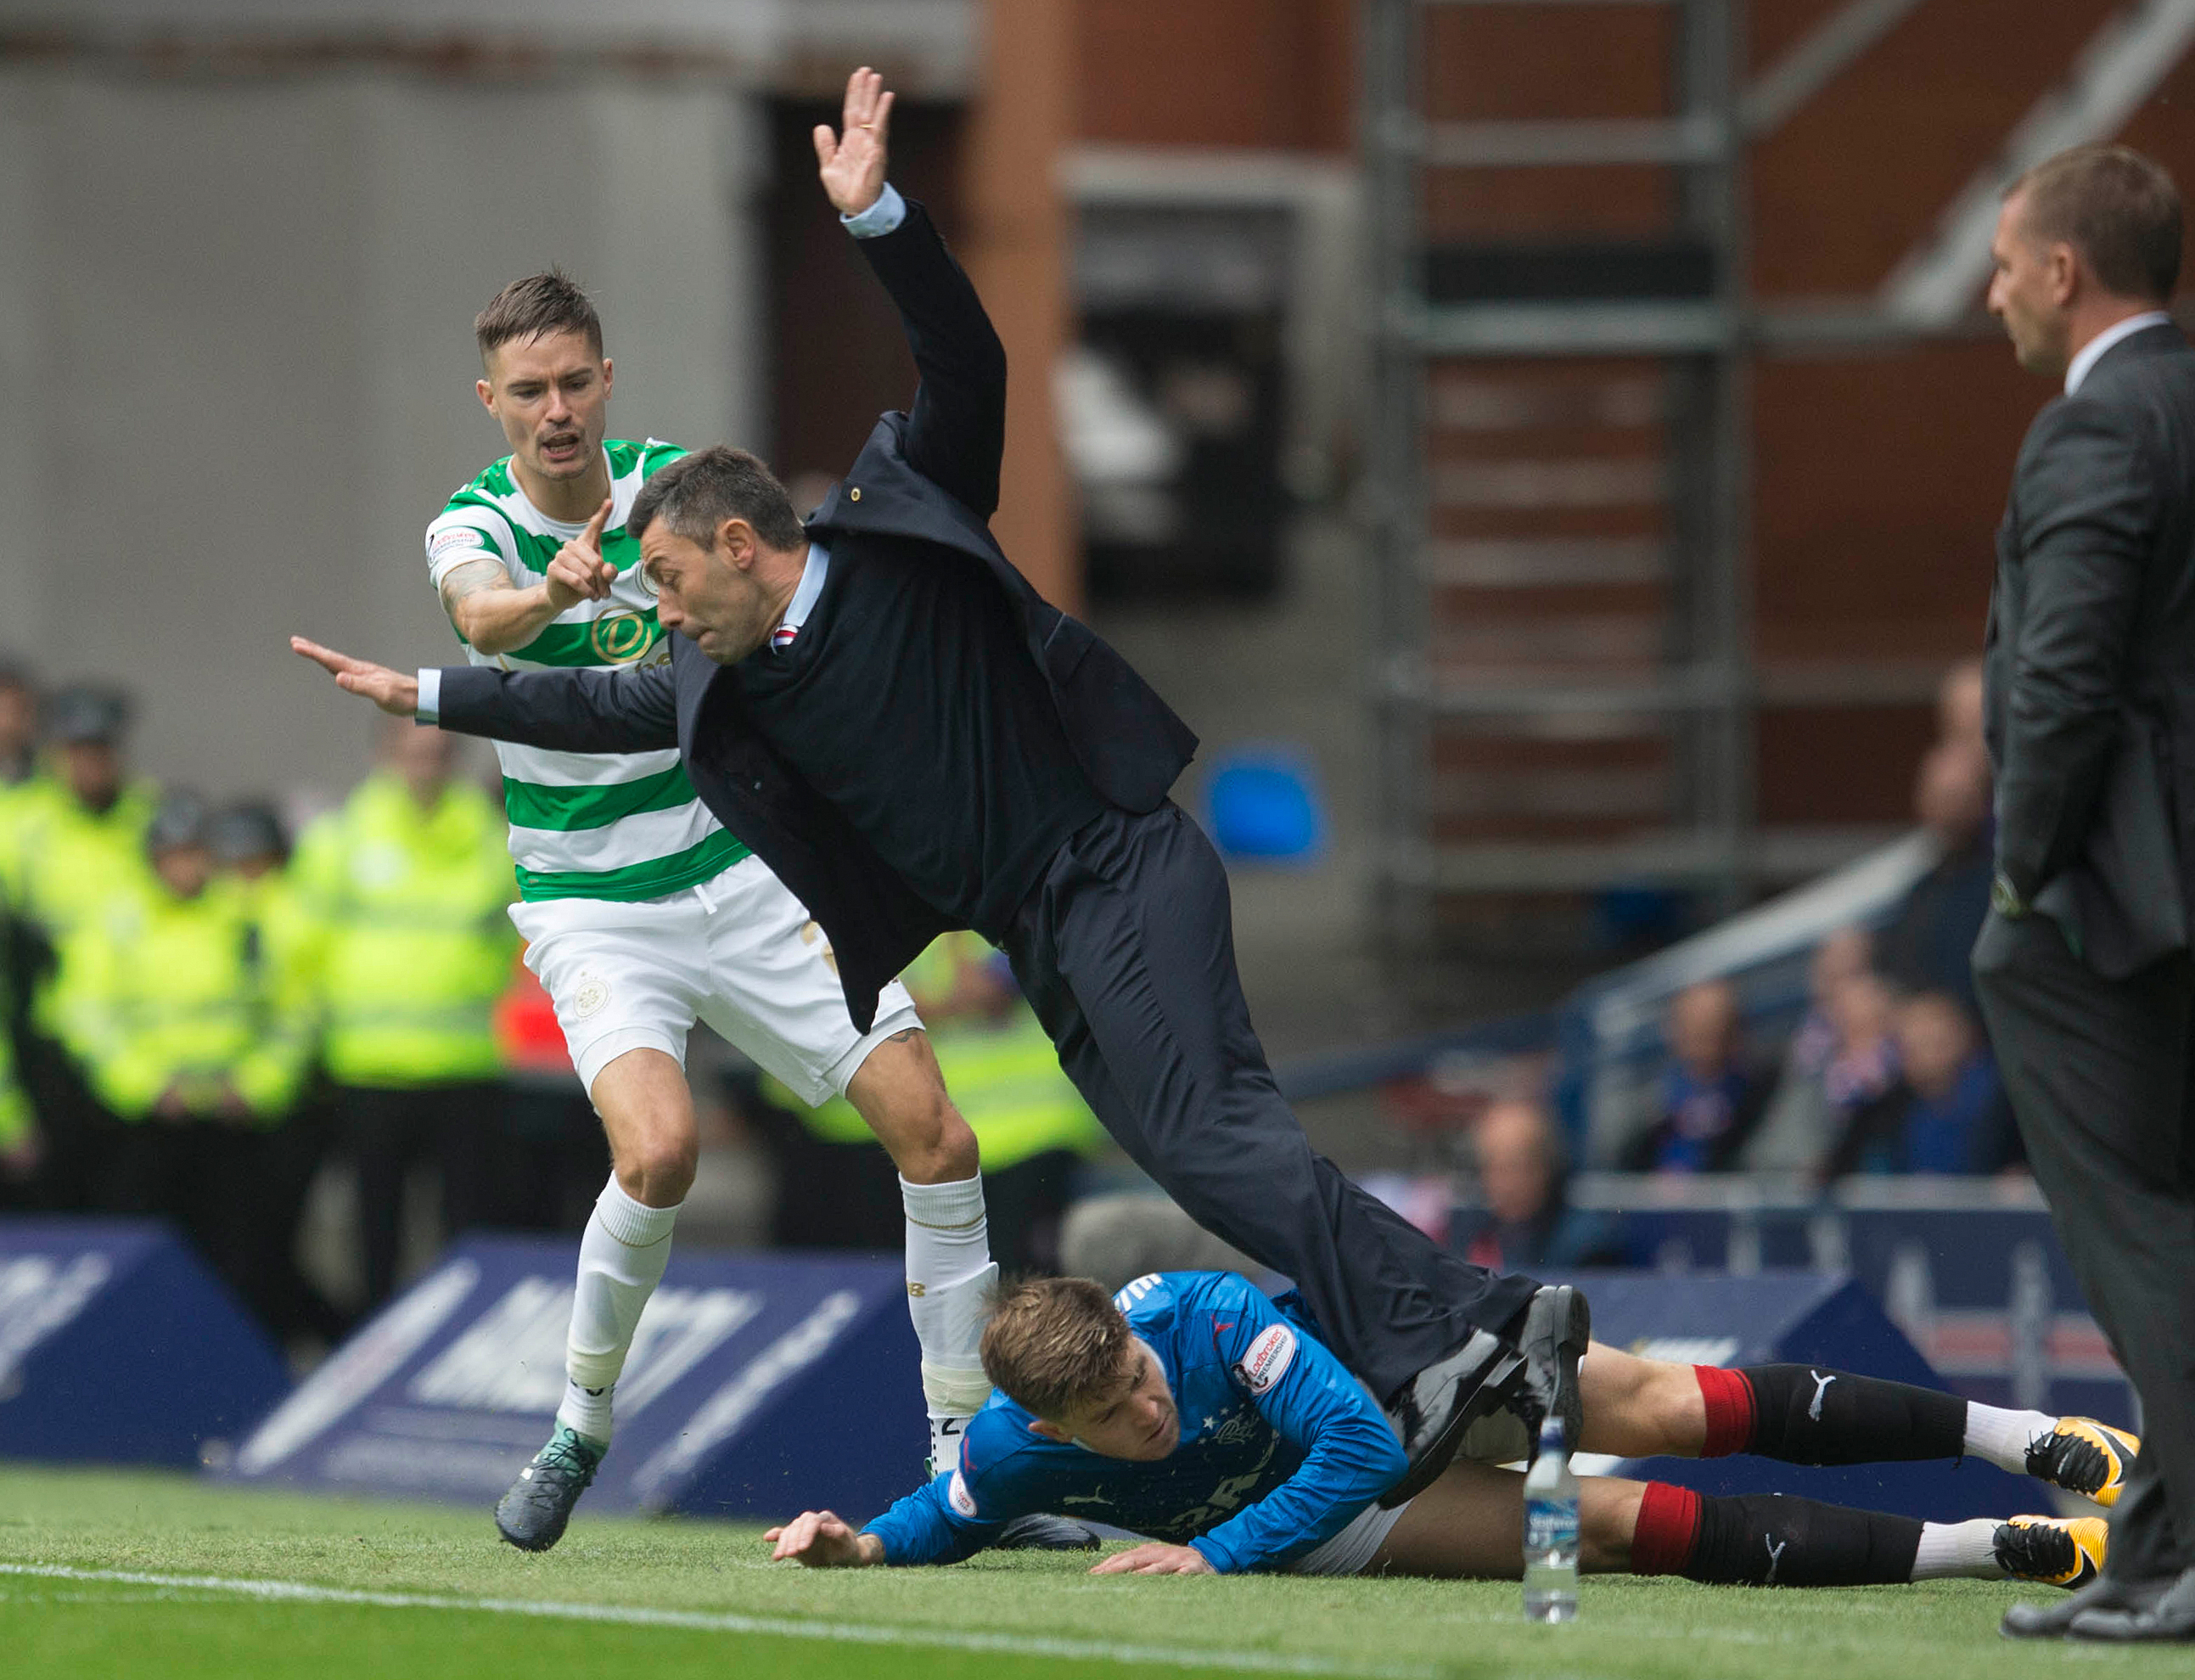 The awks moment Pedro Caixinha was inadvertently tackled by his